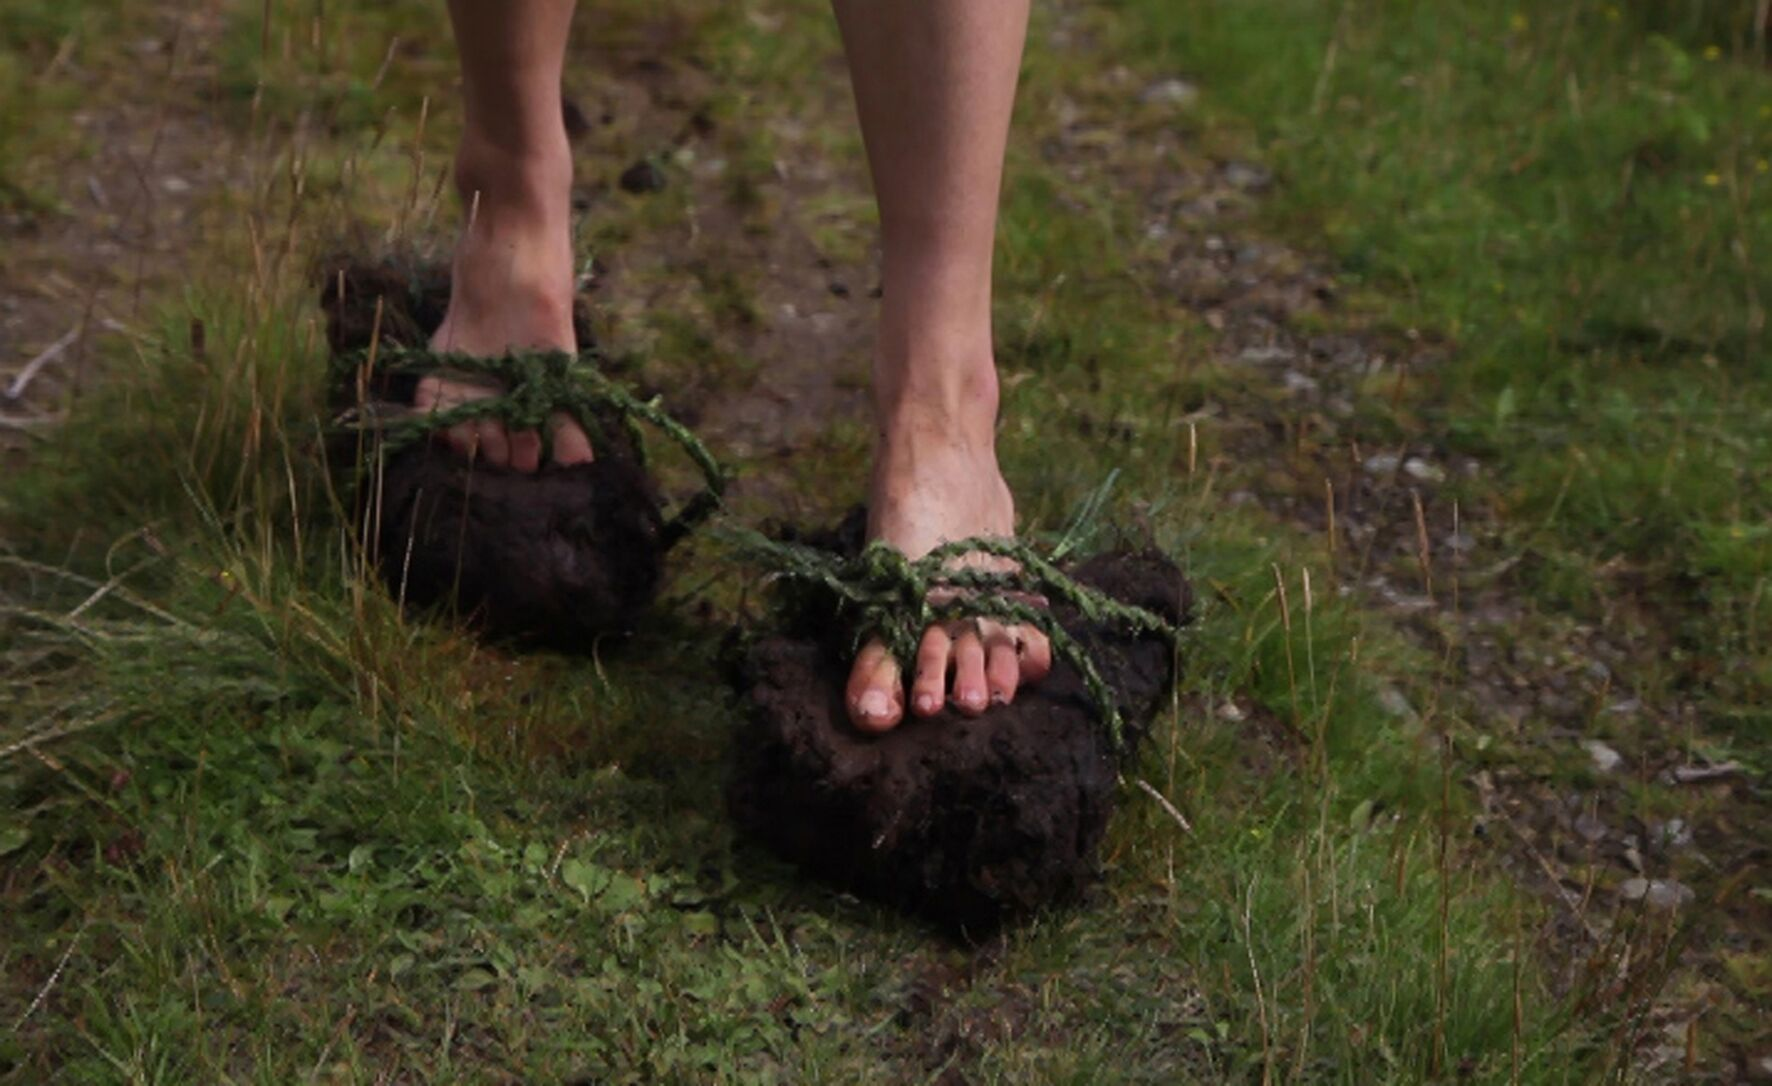 Jessica Ramm, 'Walking of the Peats' (performance video still). Image: Jessica Ramm and Talitha Kotze